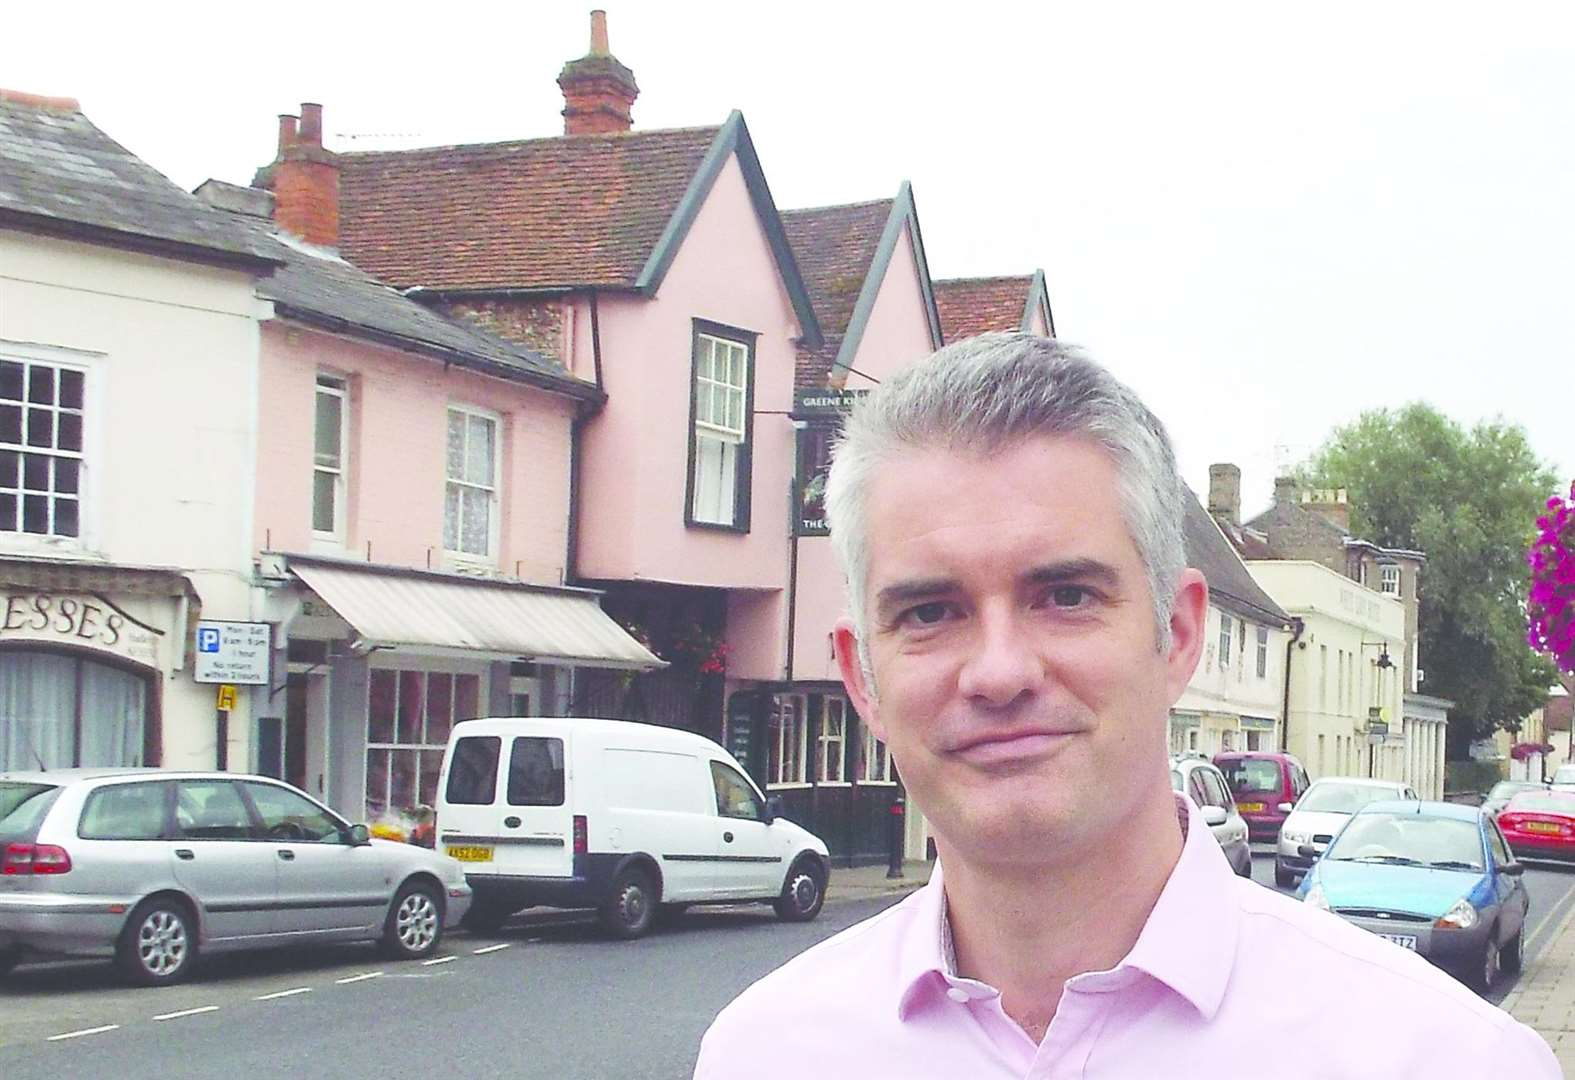 MP voices 'hard Brexit' concerns as 500 jobs in Glemsford face uncertain future